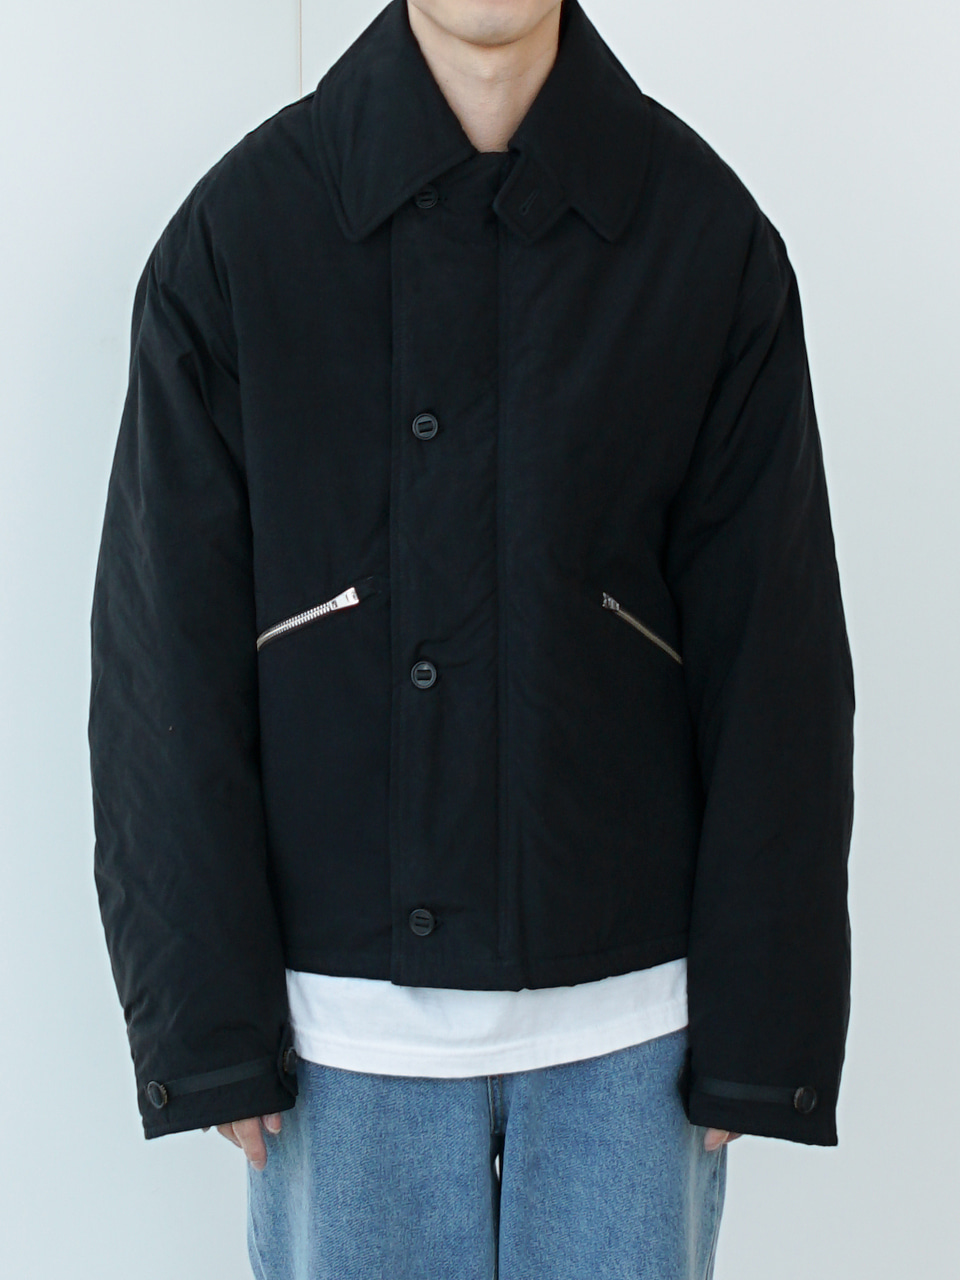 Ben Relaxed Work Jacket (2color)